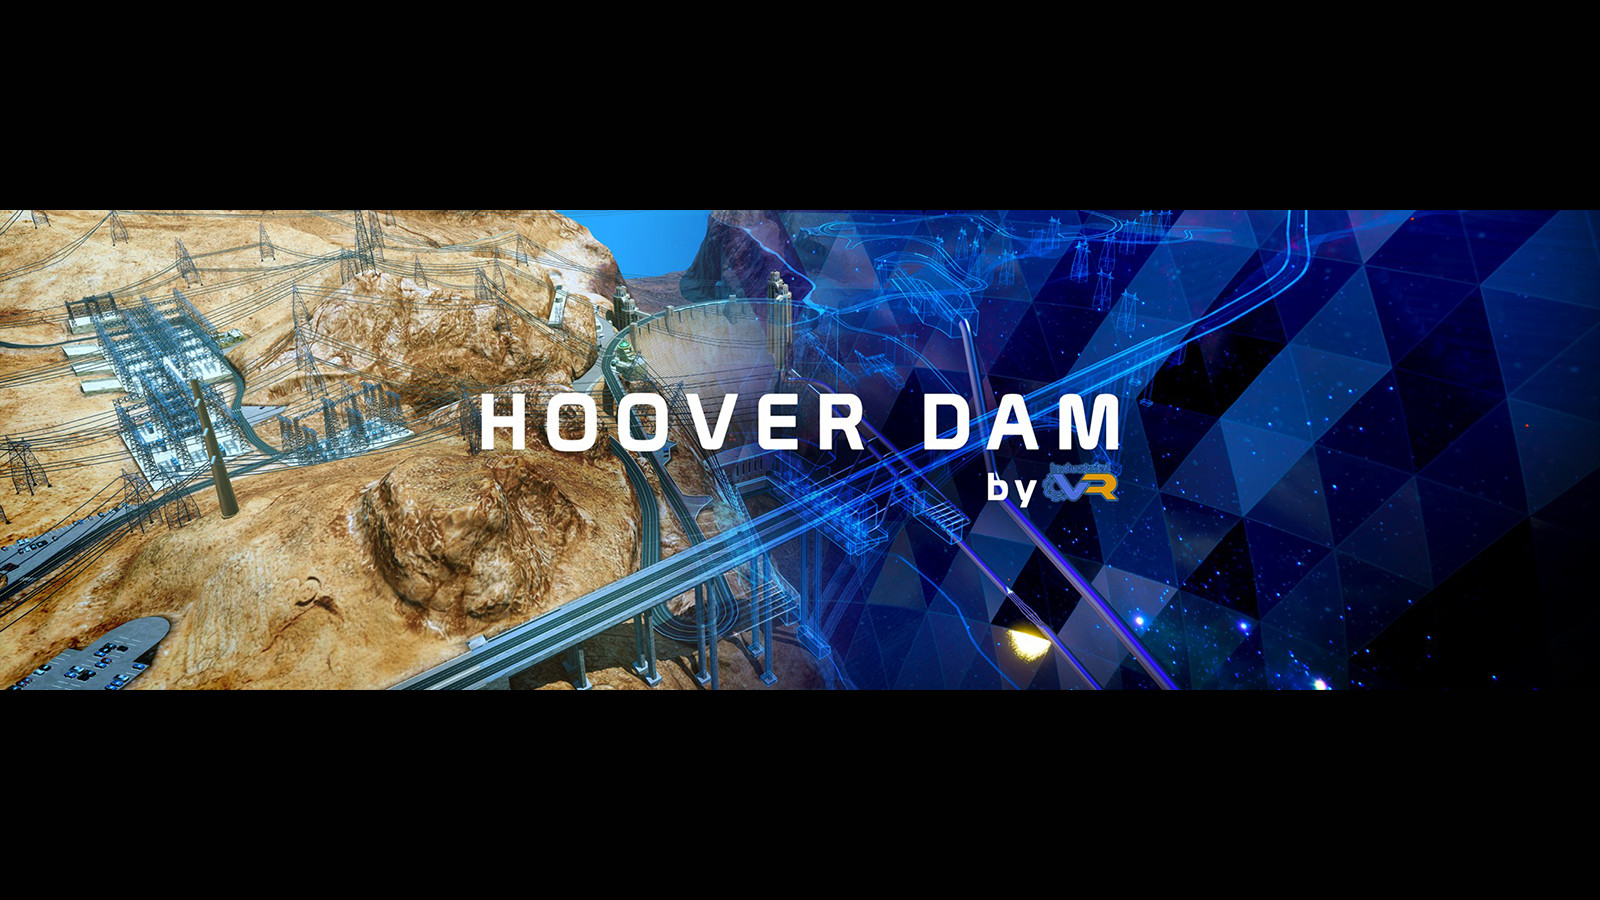 Explore The Hoover Dam In VR Like Never Seen Before